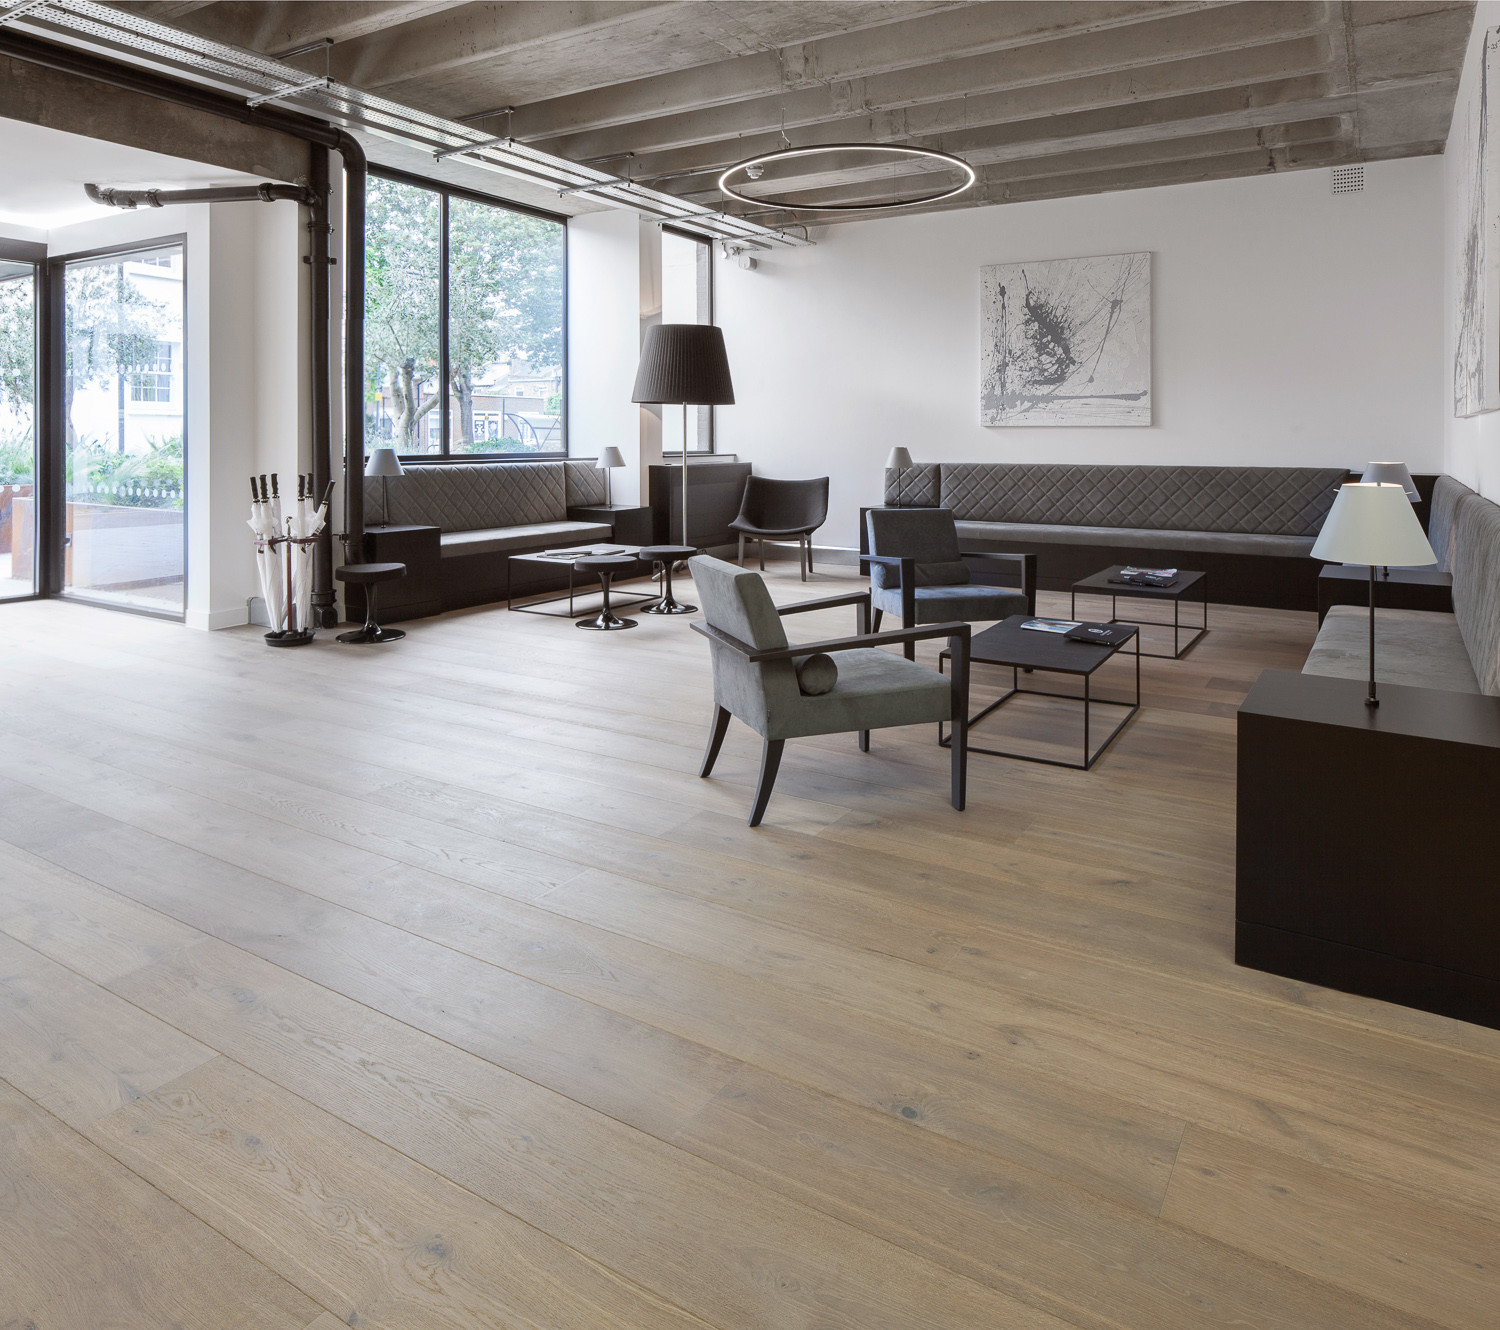 golden hickory hardwood flooring of the new reclaimed flooring company with the report indicated that 82 of workers who were employed in places with eight or more wood surfaces had higher personal productivity mood concentration